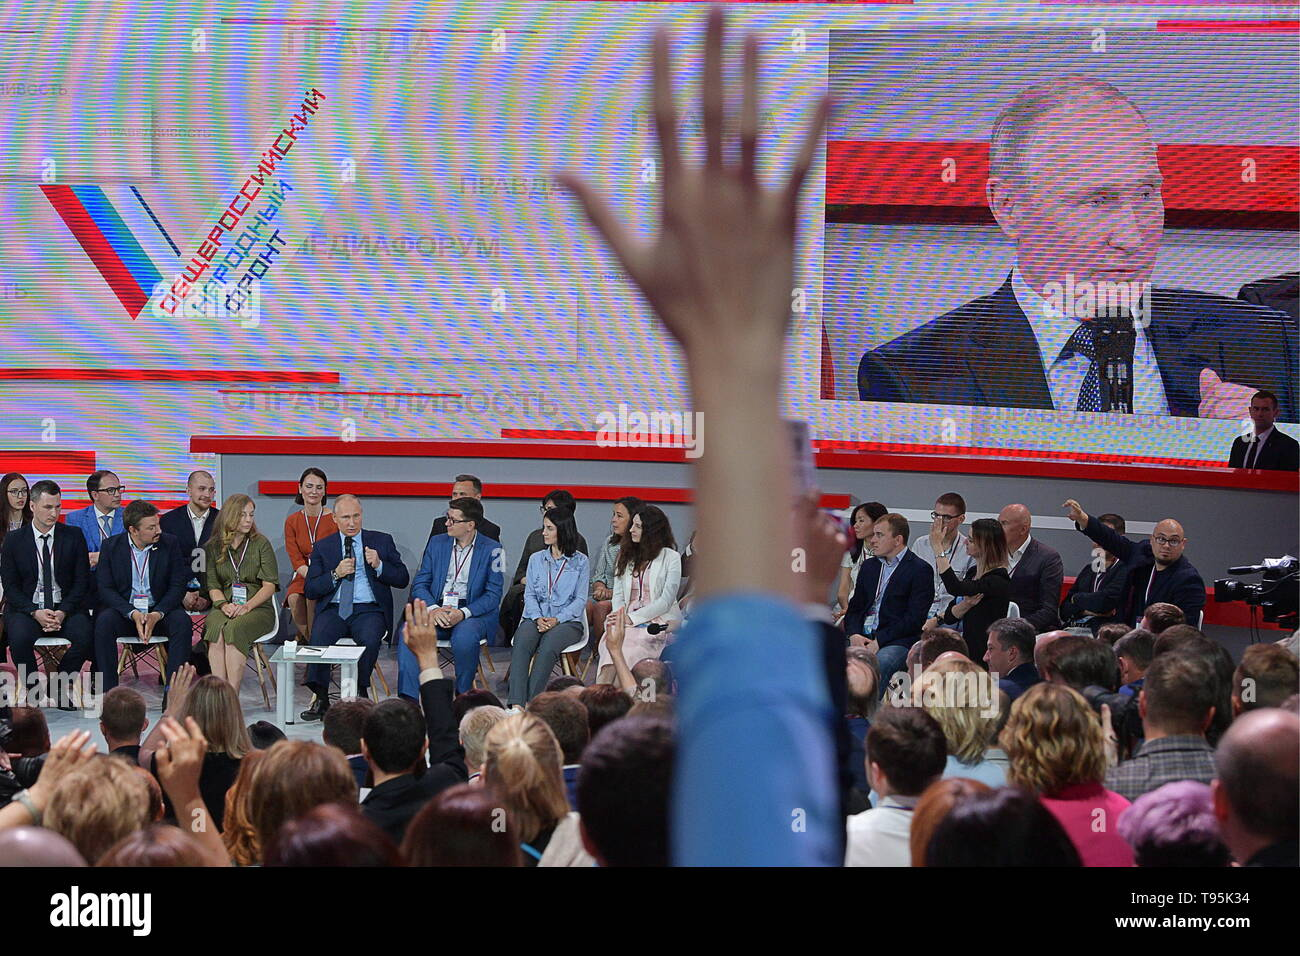 Sochi, Russia. 16th May, 2019. SOCHI, RUSSIA - MAY 16, 2019: Russia's President Vladimir Putin (4th L back) attends the plenary meeting at the 6th Independent Local and Regional Media Forum held by the All-Russian People's Front. Alexei Druzhinin/Russian Presidential Press and Information Office/TASS Credit: ITAR-TASS News Agency/Alamy Live News - Stock Image